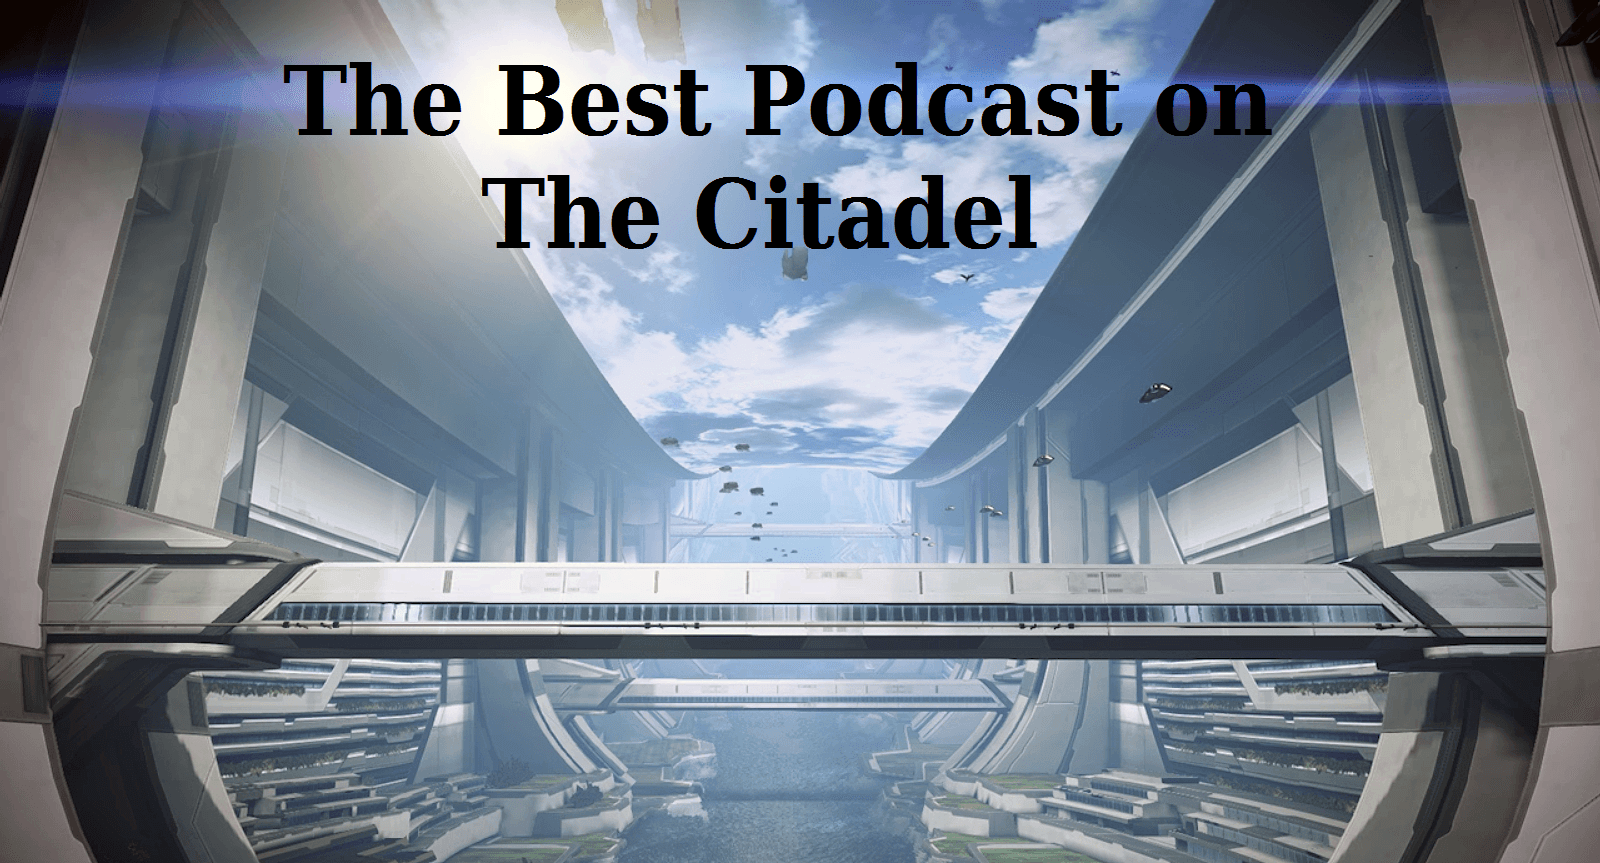 The Best Podcast on the Citadel, Ep. 32